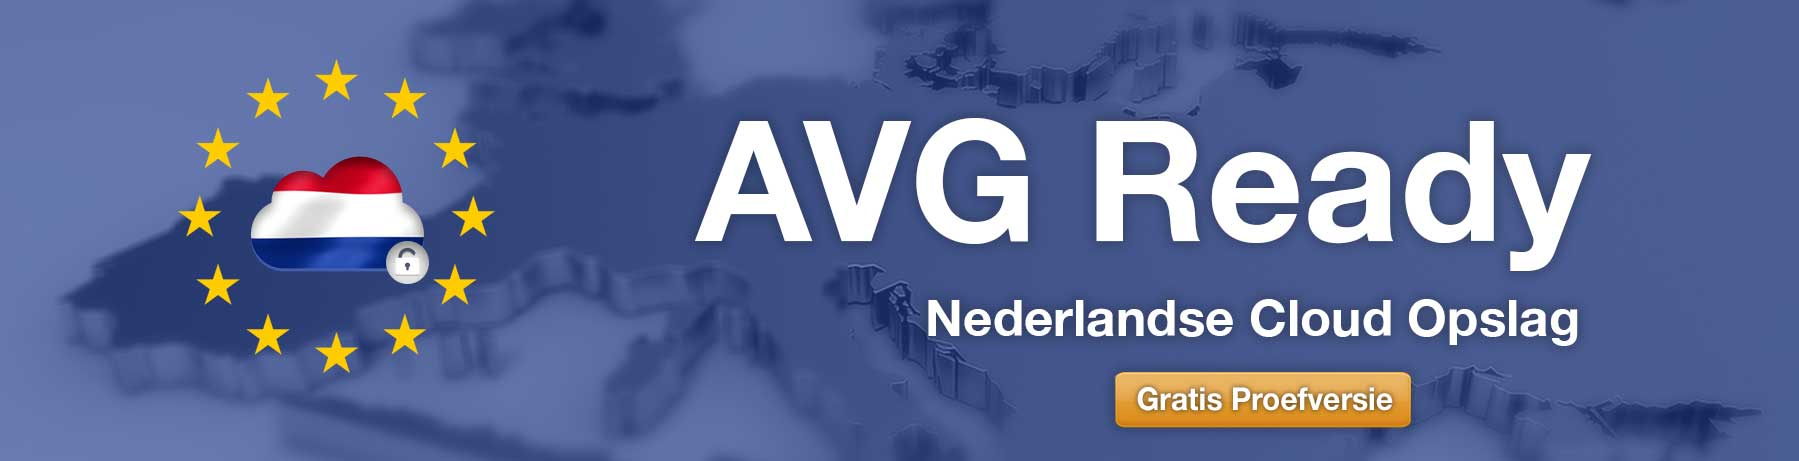 acg ready cloud - gratis proefversie